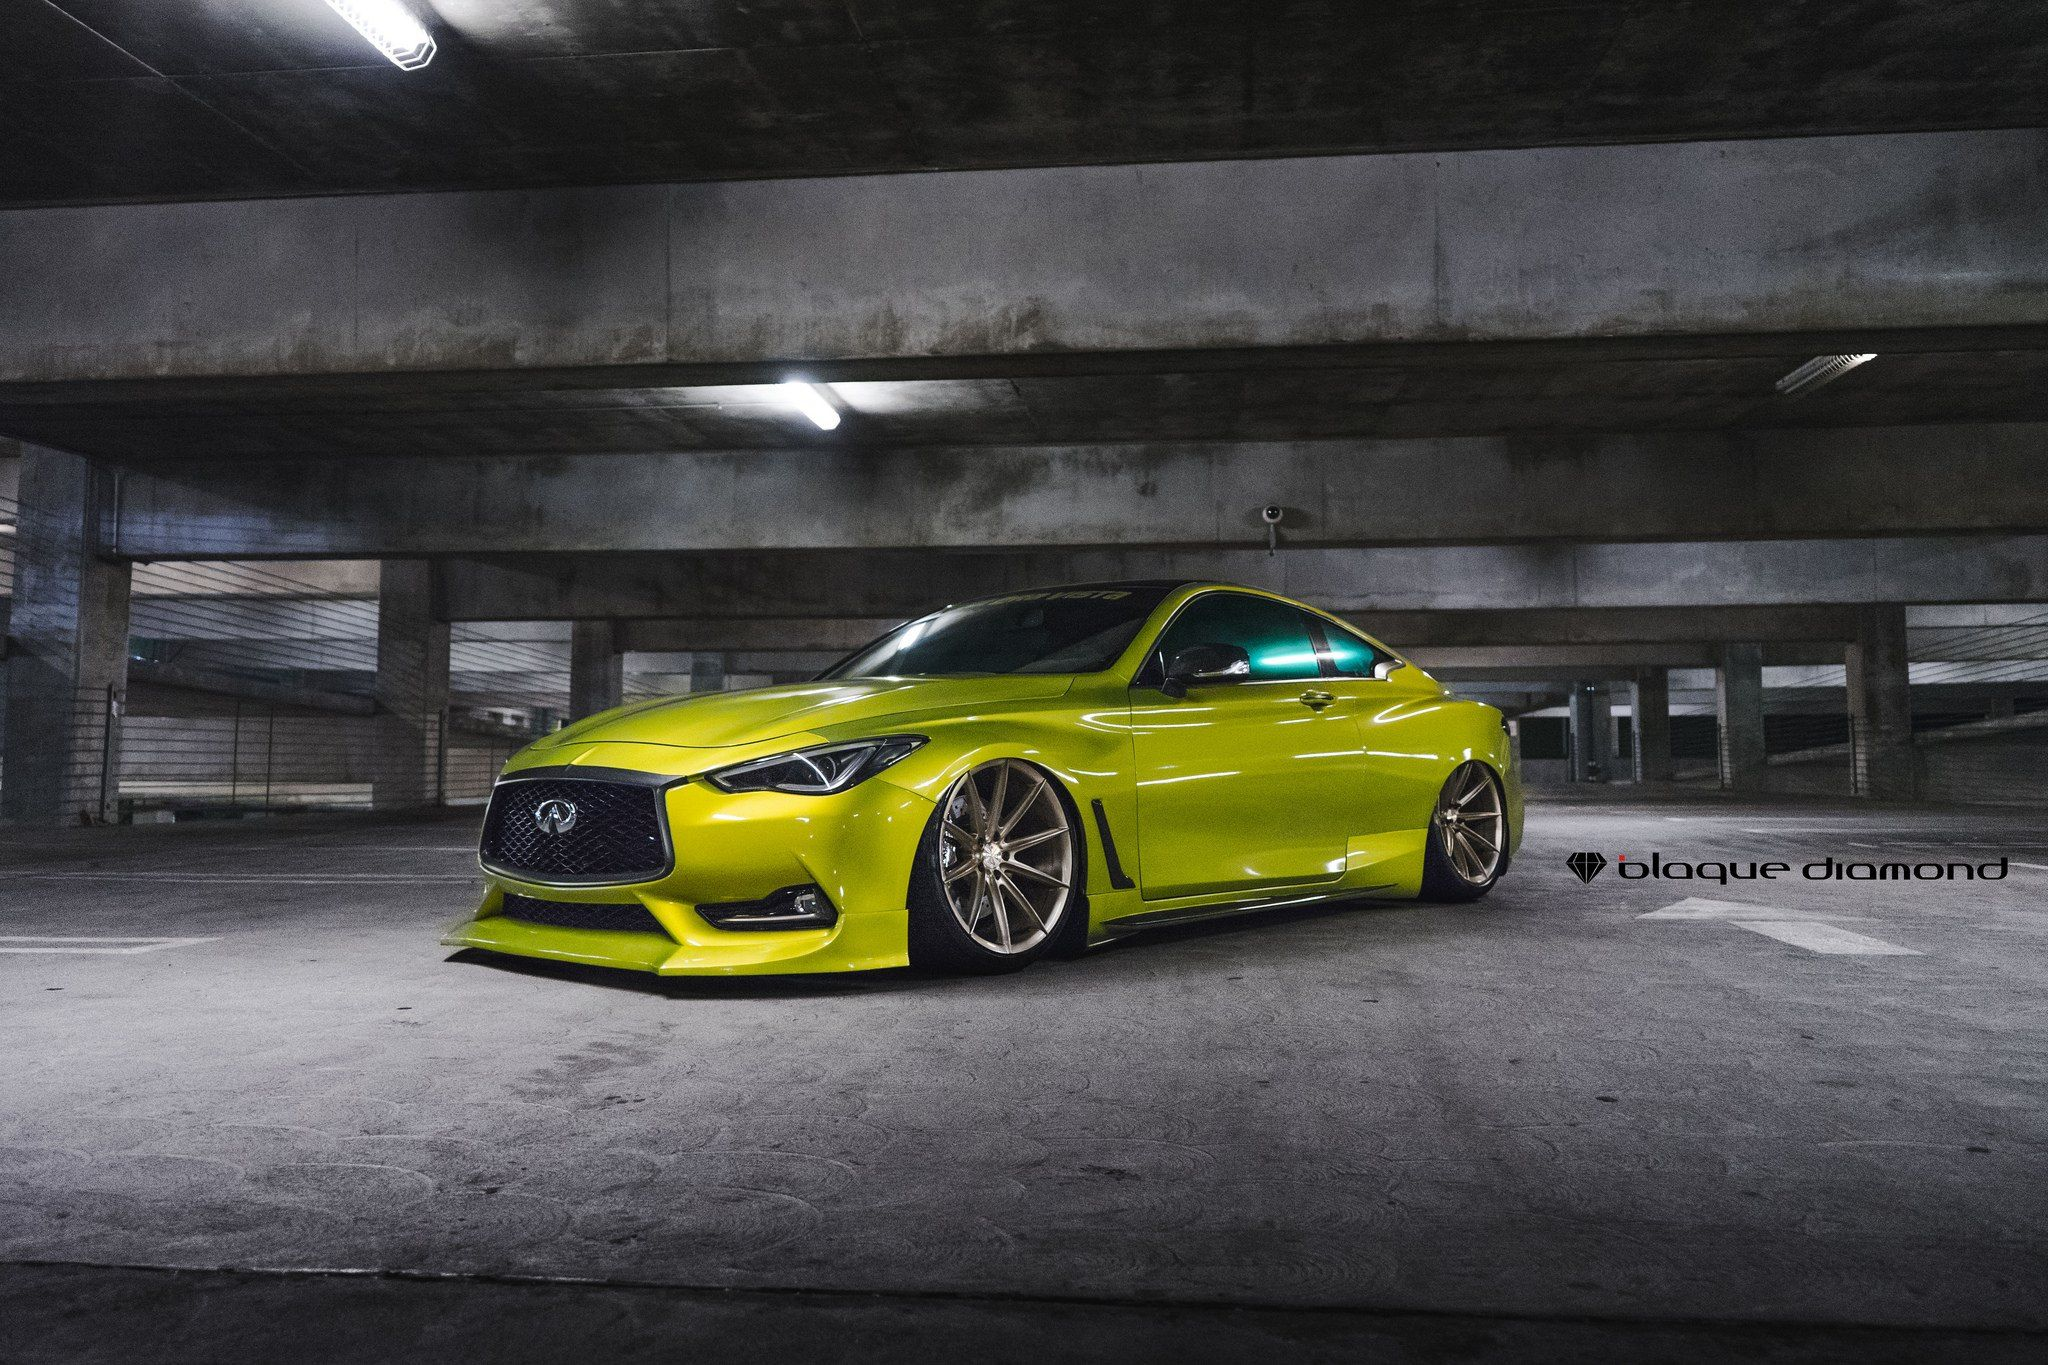 Yellow Infiniti Q60 Body Kit Bronze Blaque Diamond Wheels Awesomeness Body Kit Infiniti Car Parts And Accessories